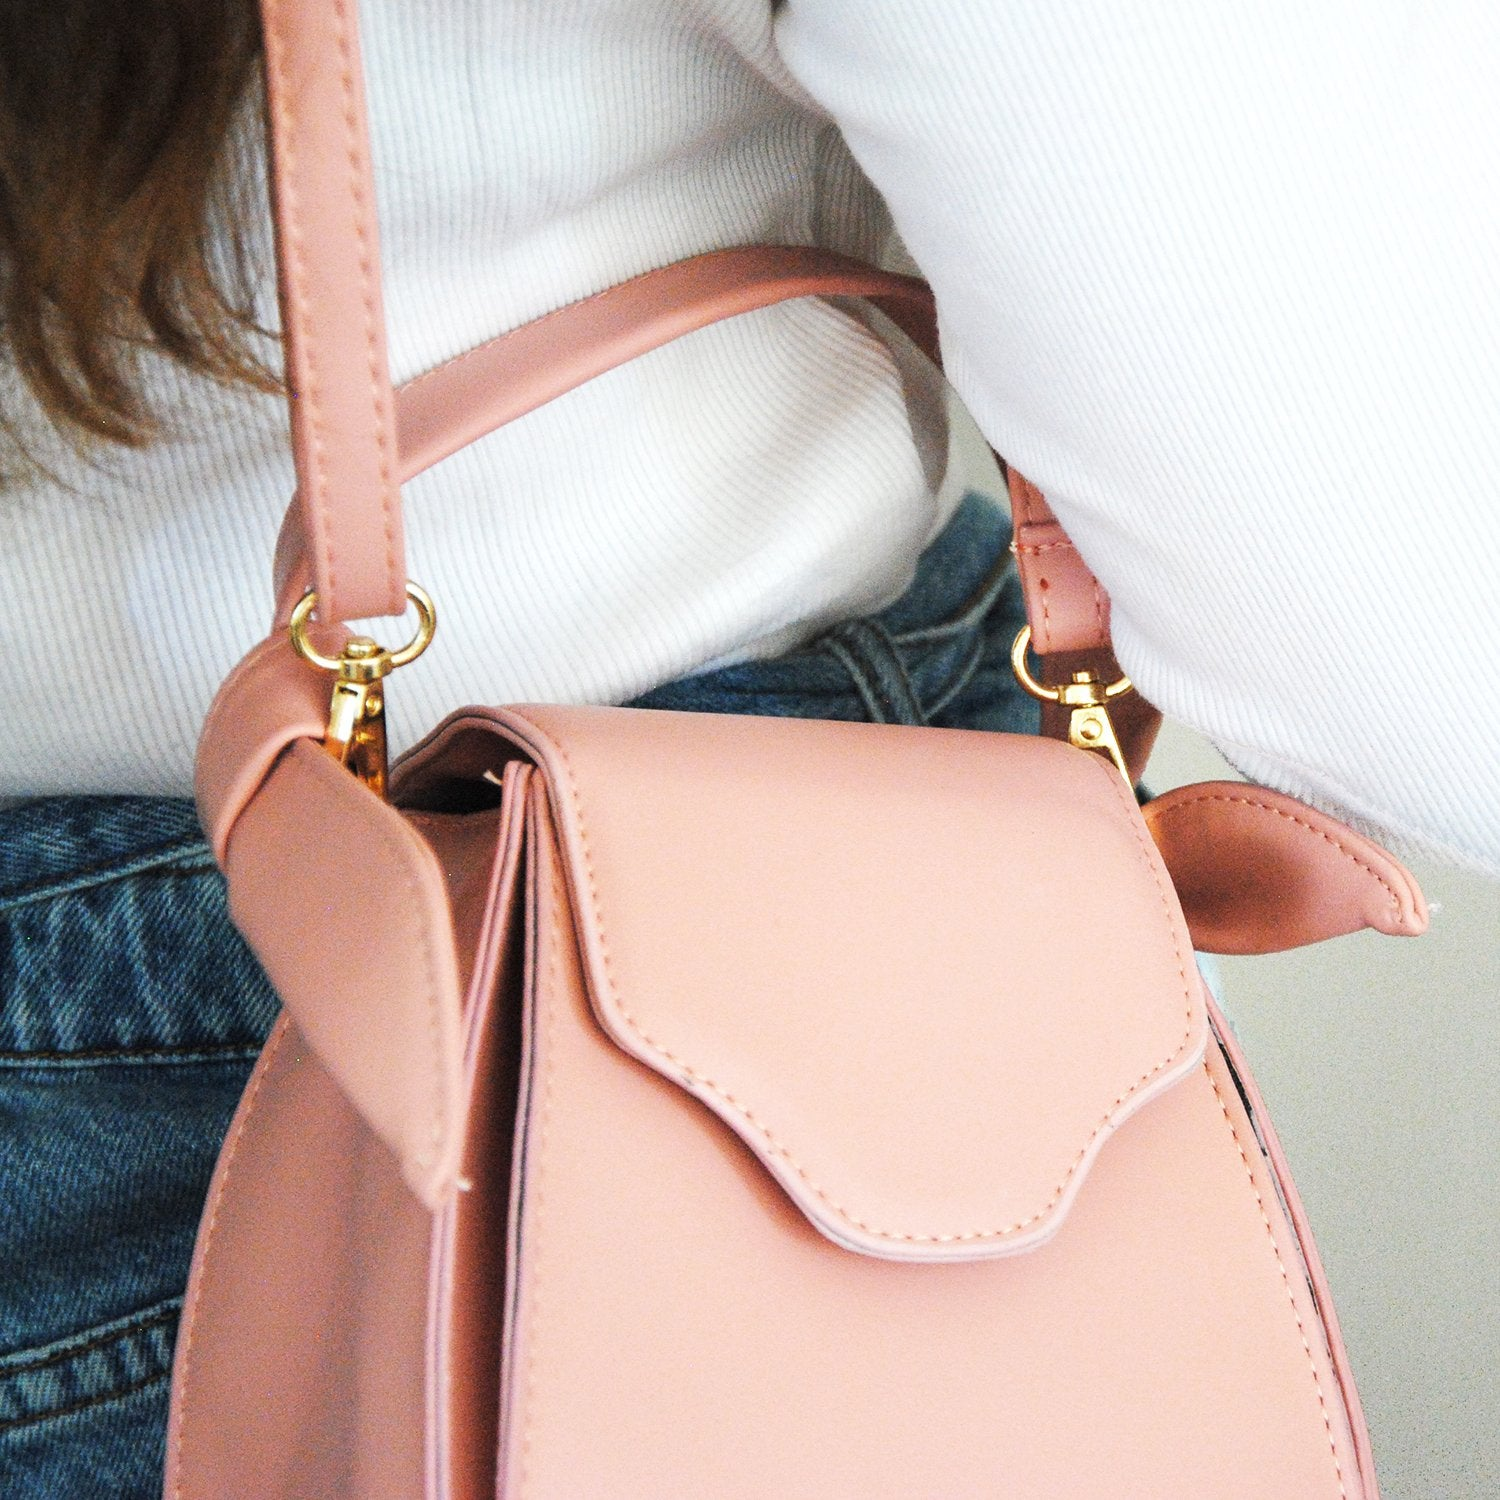 Johnny Loves Rosie: New Bag Alert!